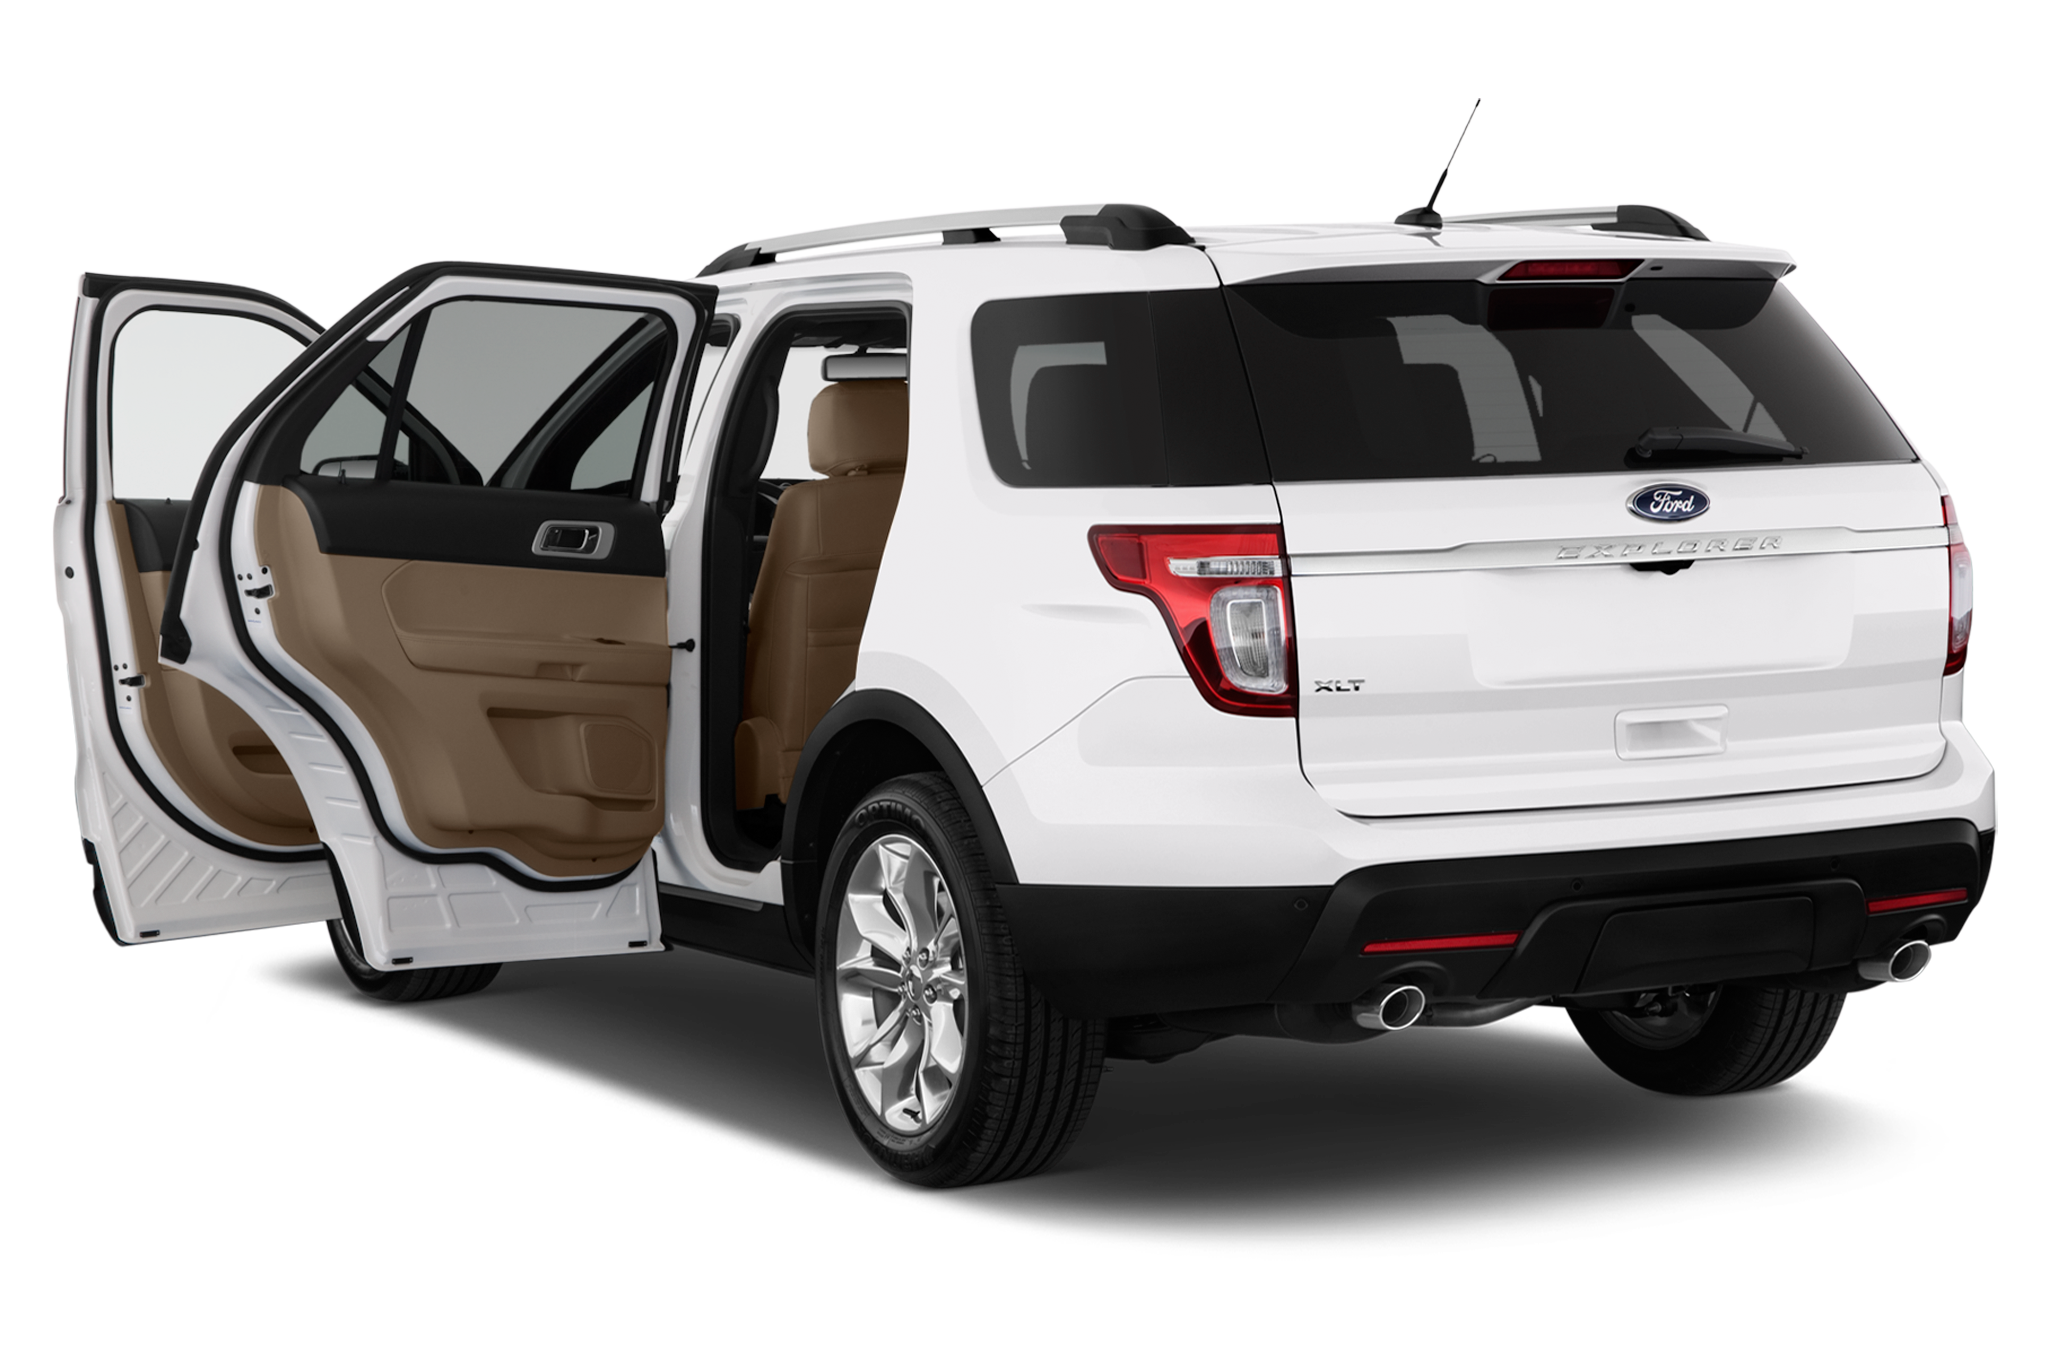 2012 ford explorer xlt suv doors first drive ford explorer and 2012 ford edge ecoboost automobile  at cos-gaming.co